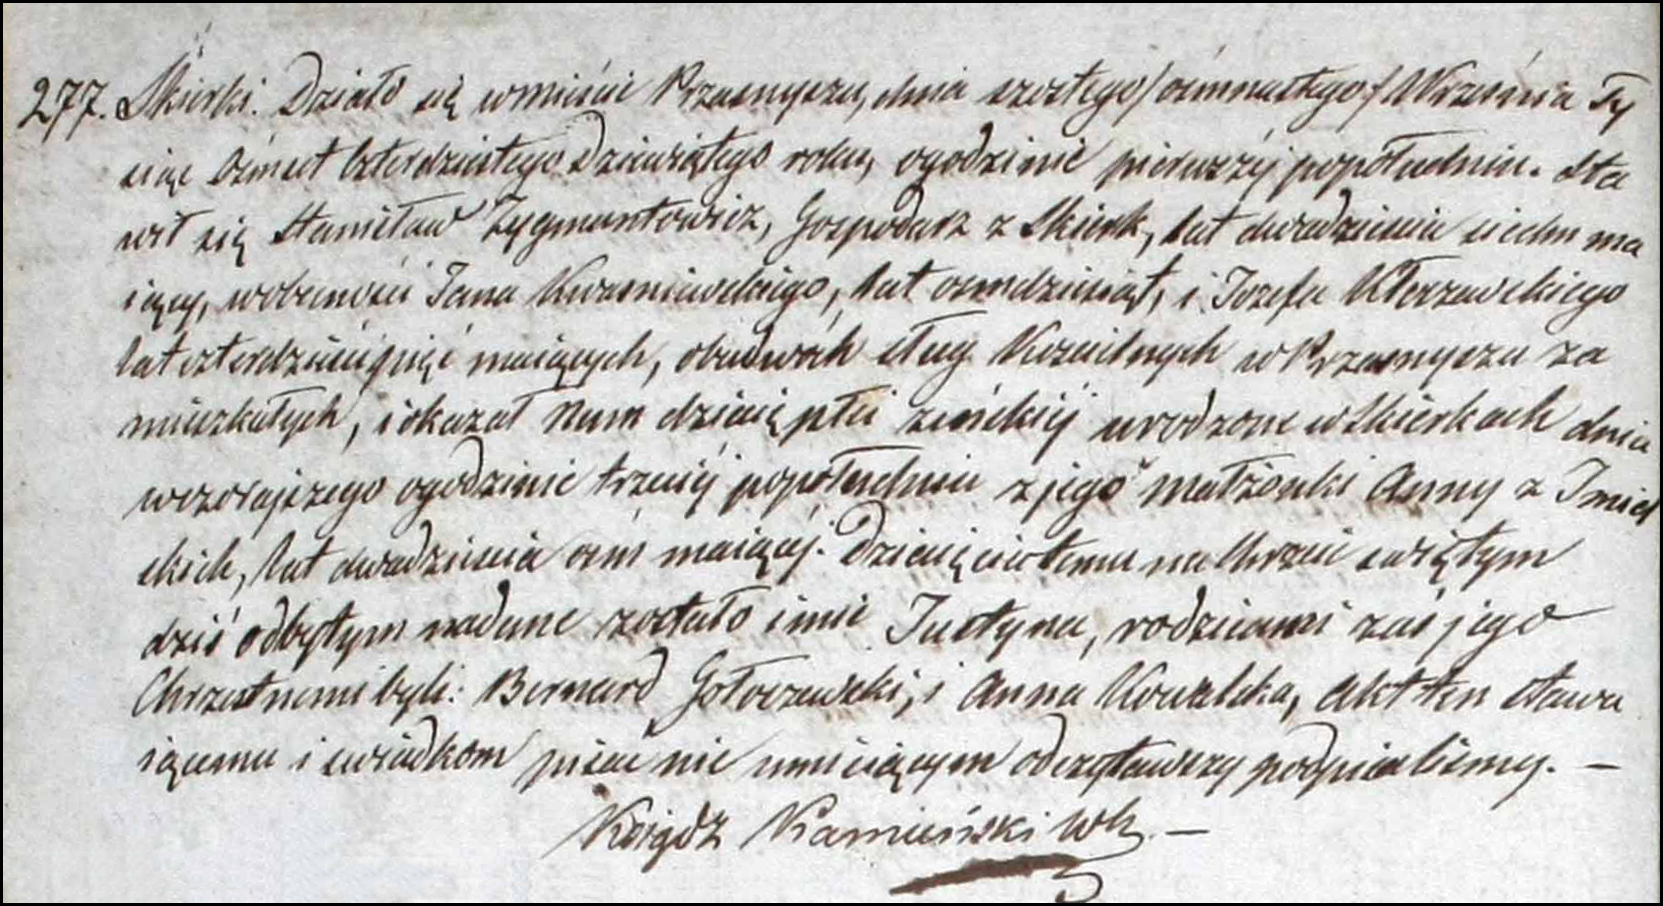 Birth and Baptismal Record of Justyna Zygmuntowicz - 1849